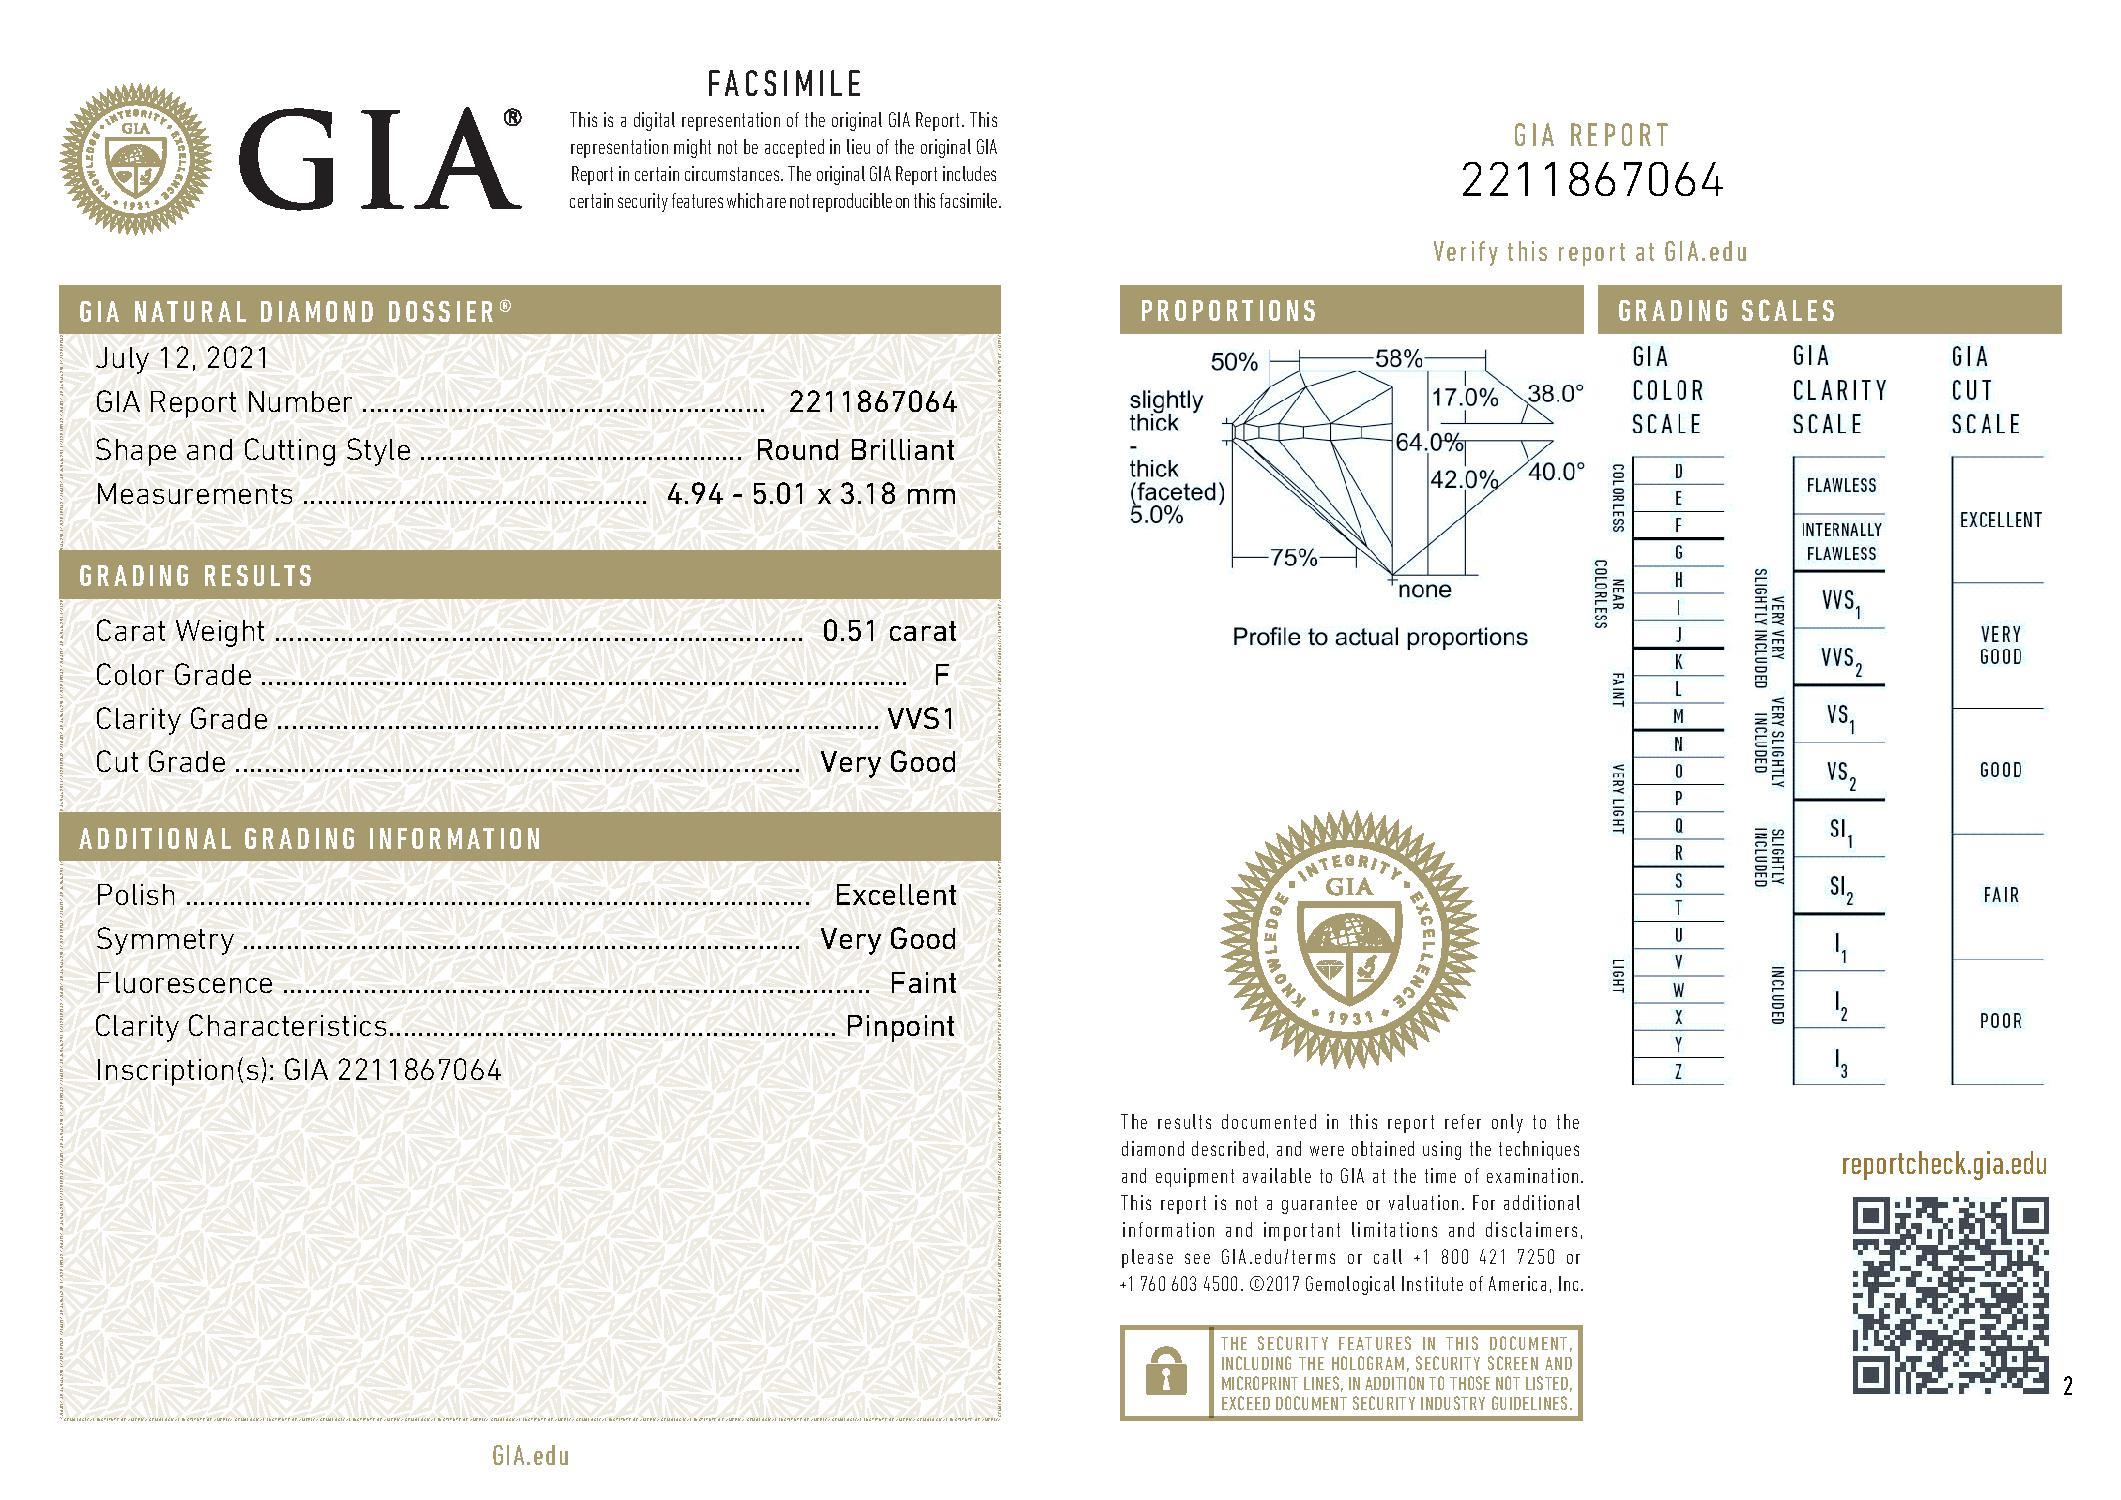 This is a 0.51 carat round shape, F color, VVS1 clarity natural diamond accompanied by a GIA grading report.